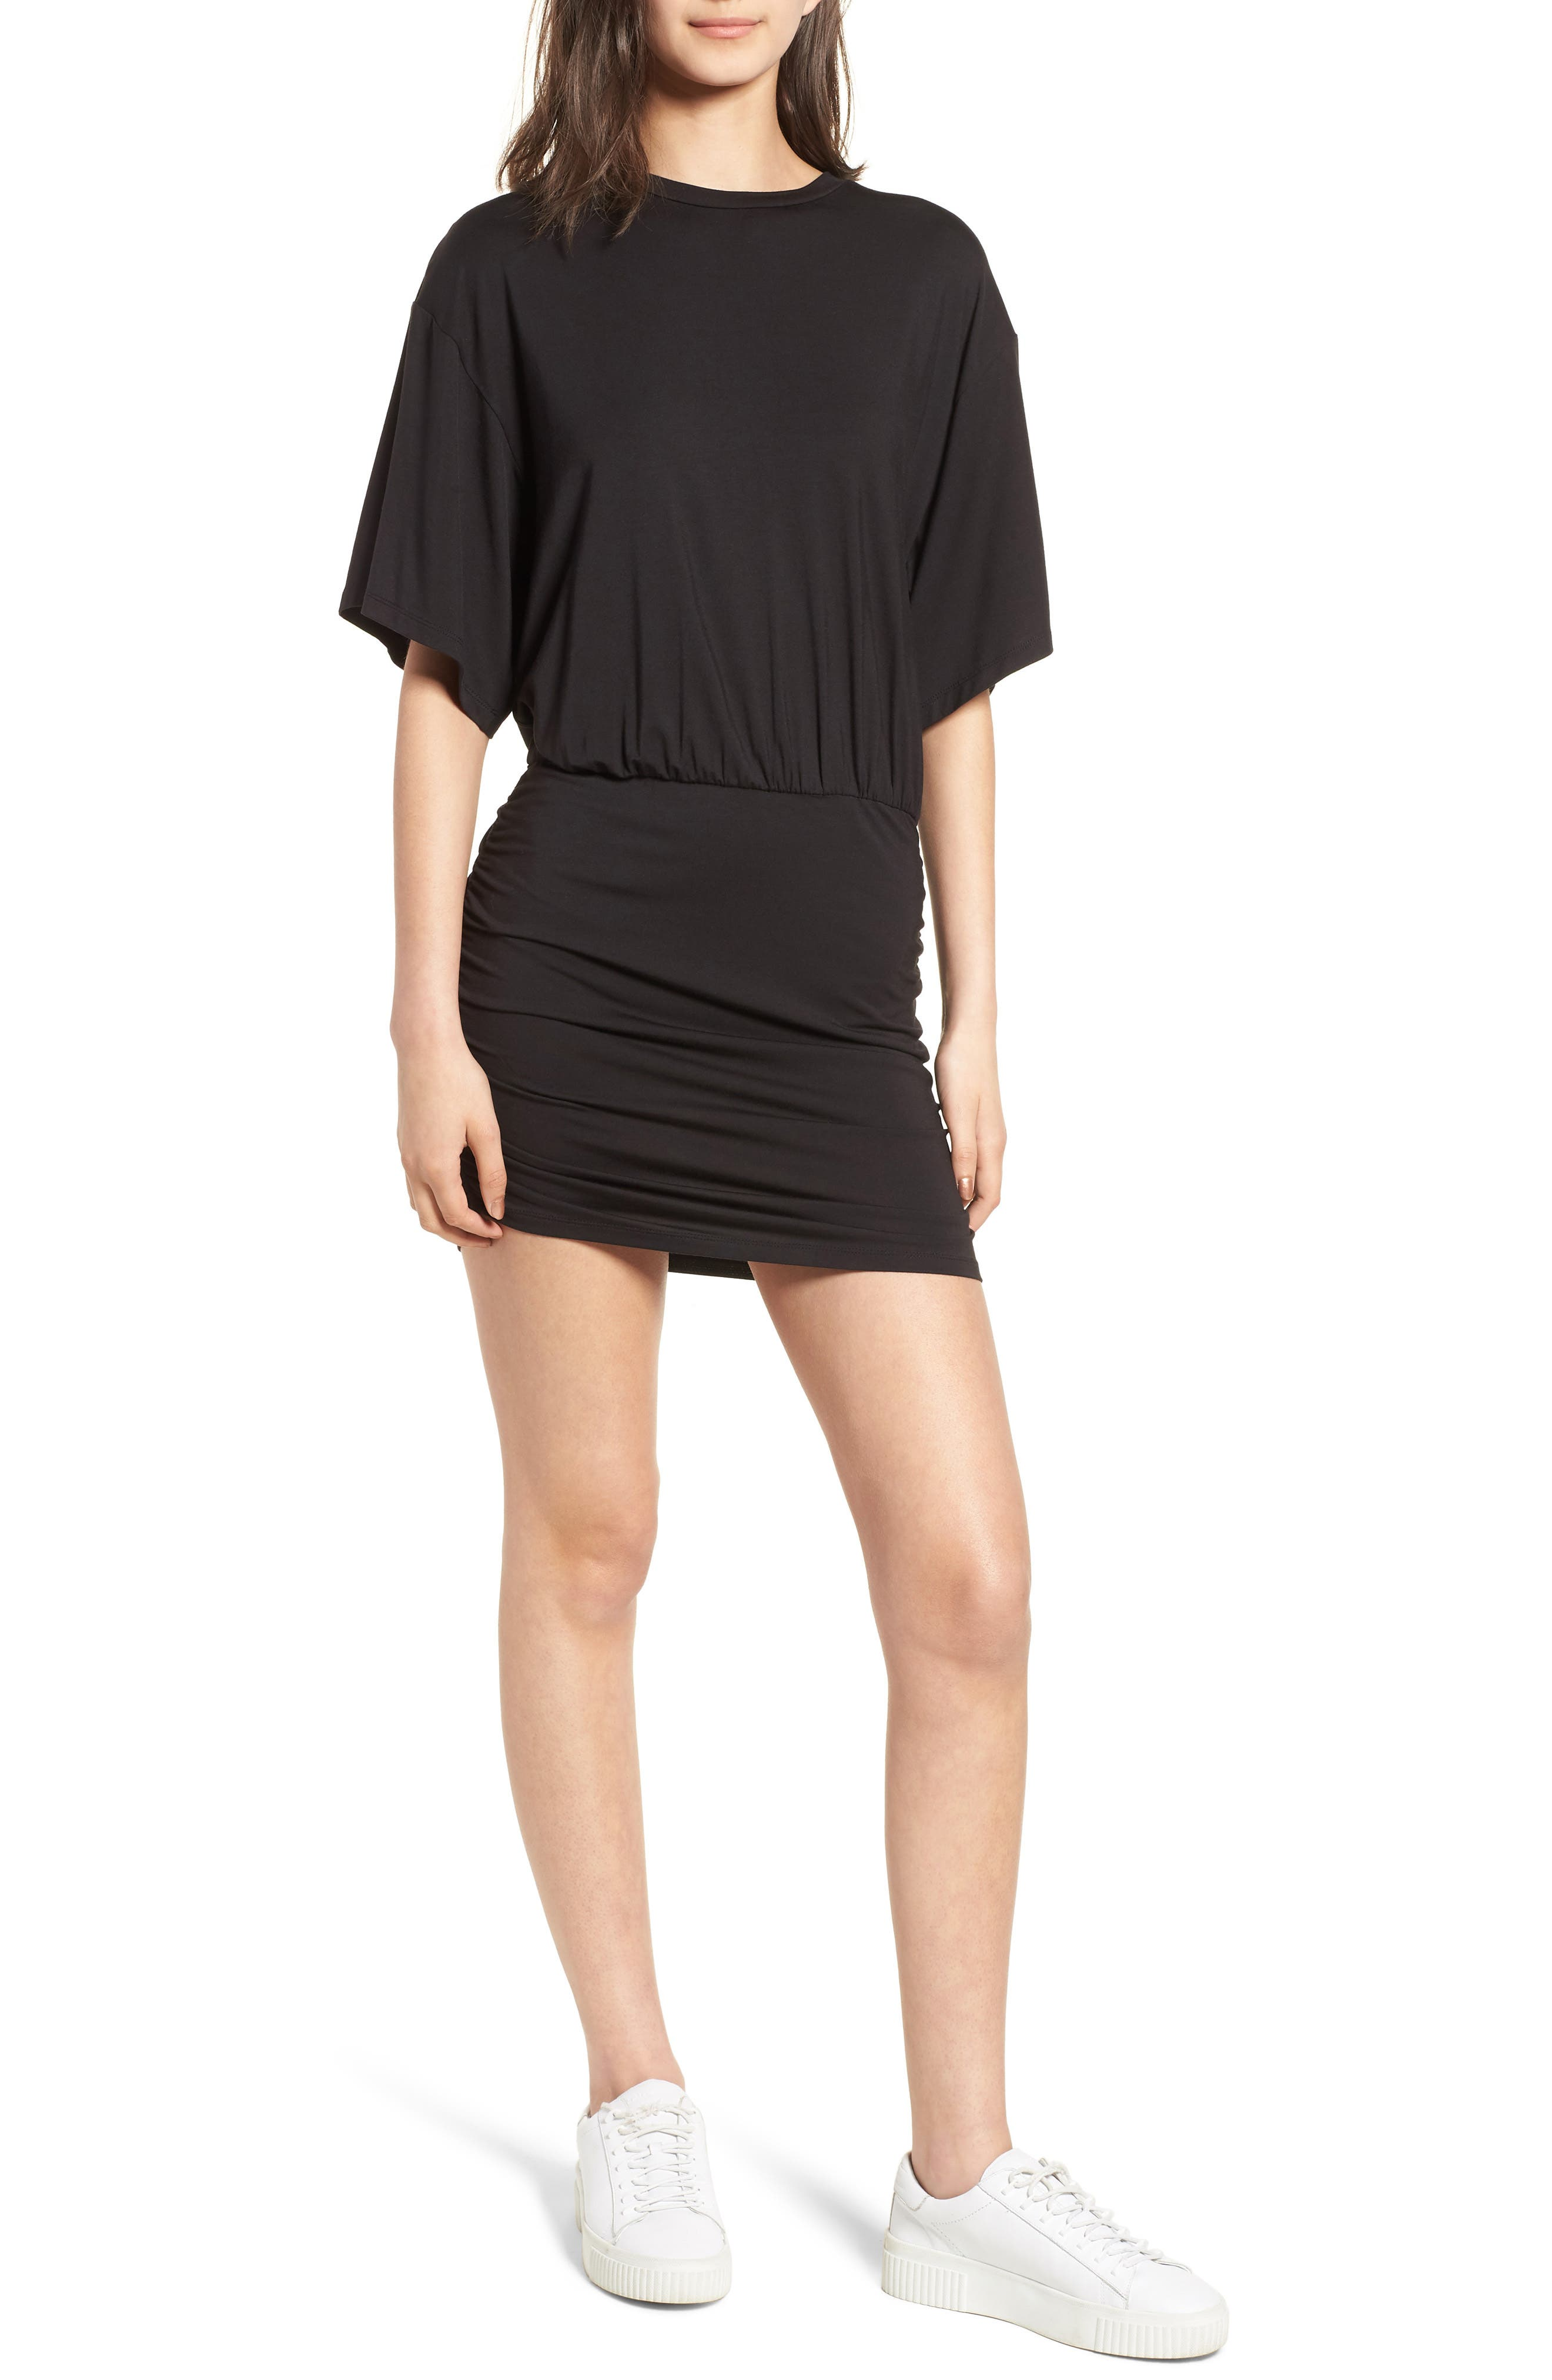 KENDALL + KYLIE,                             Open Back T-Shirt Dress,                             Main thumbnail 1, color,                             001